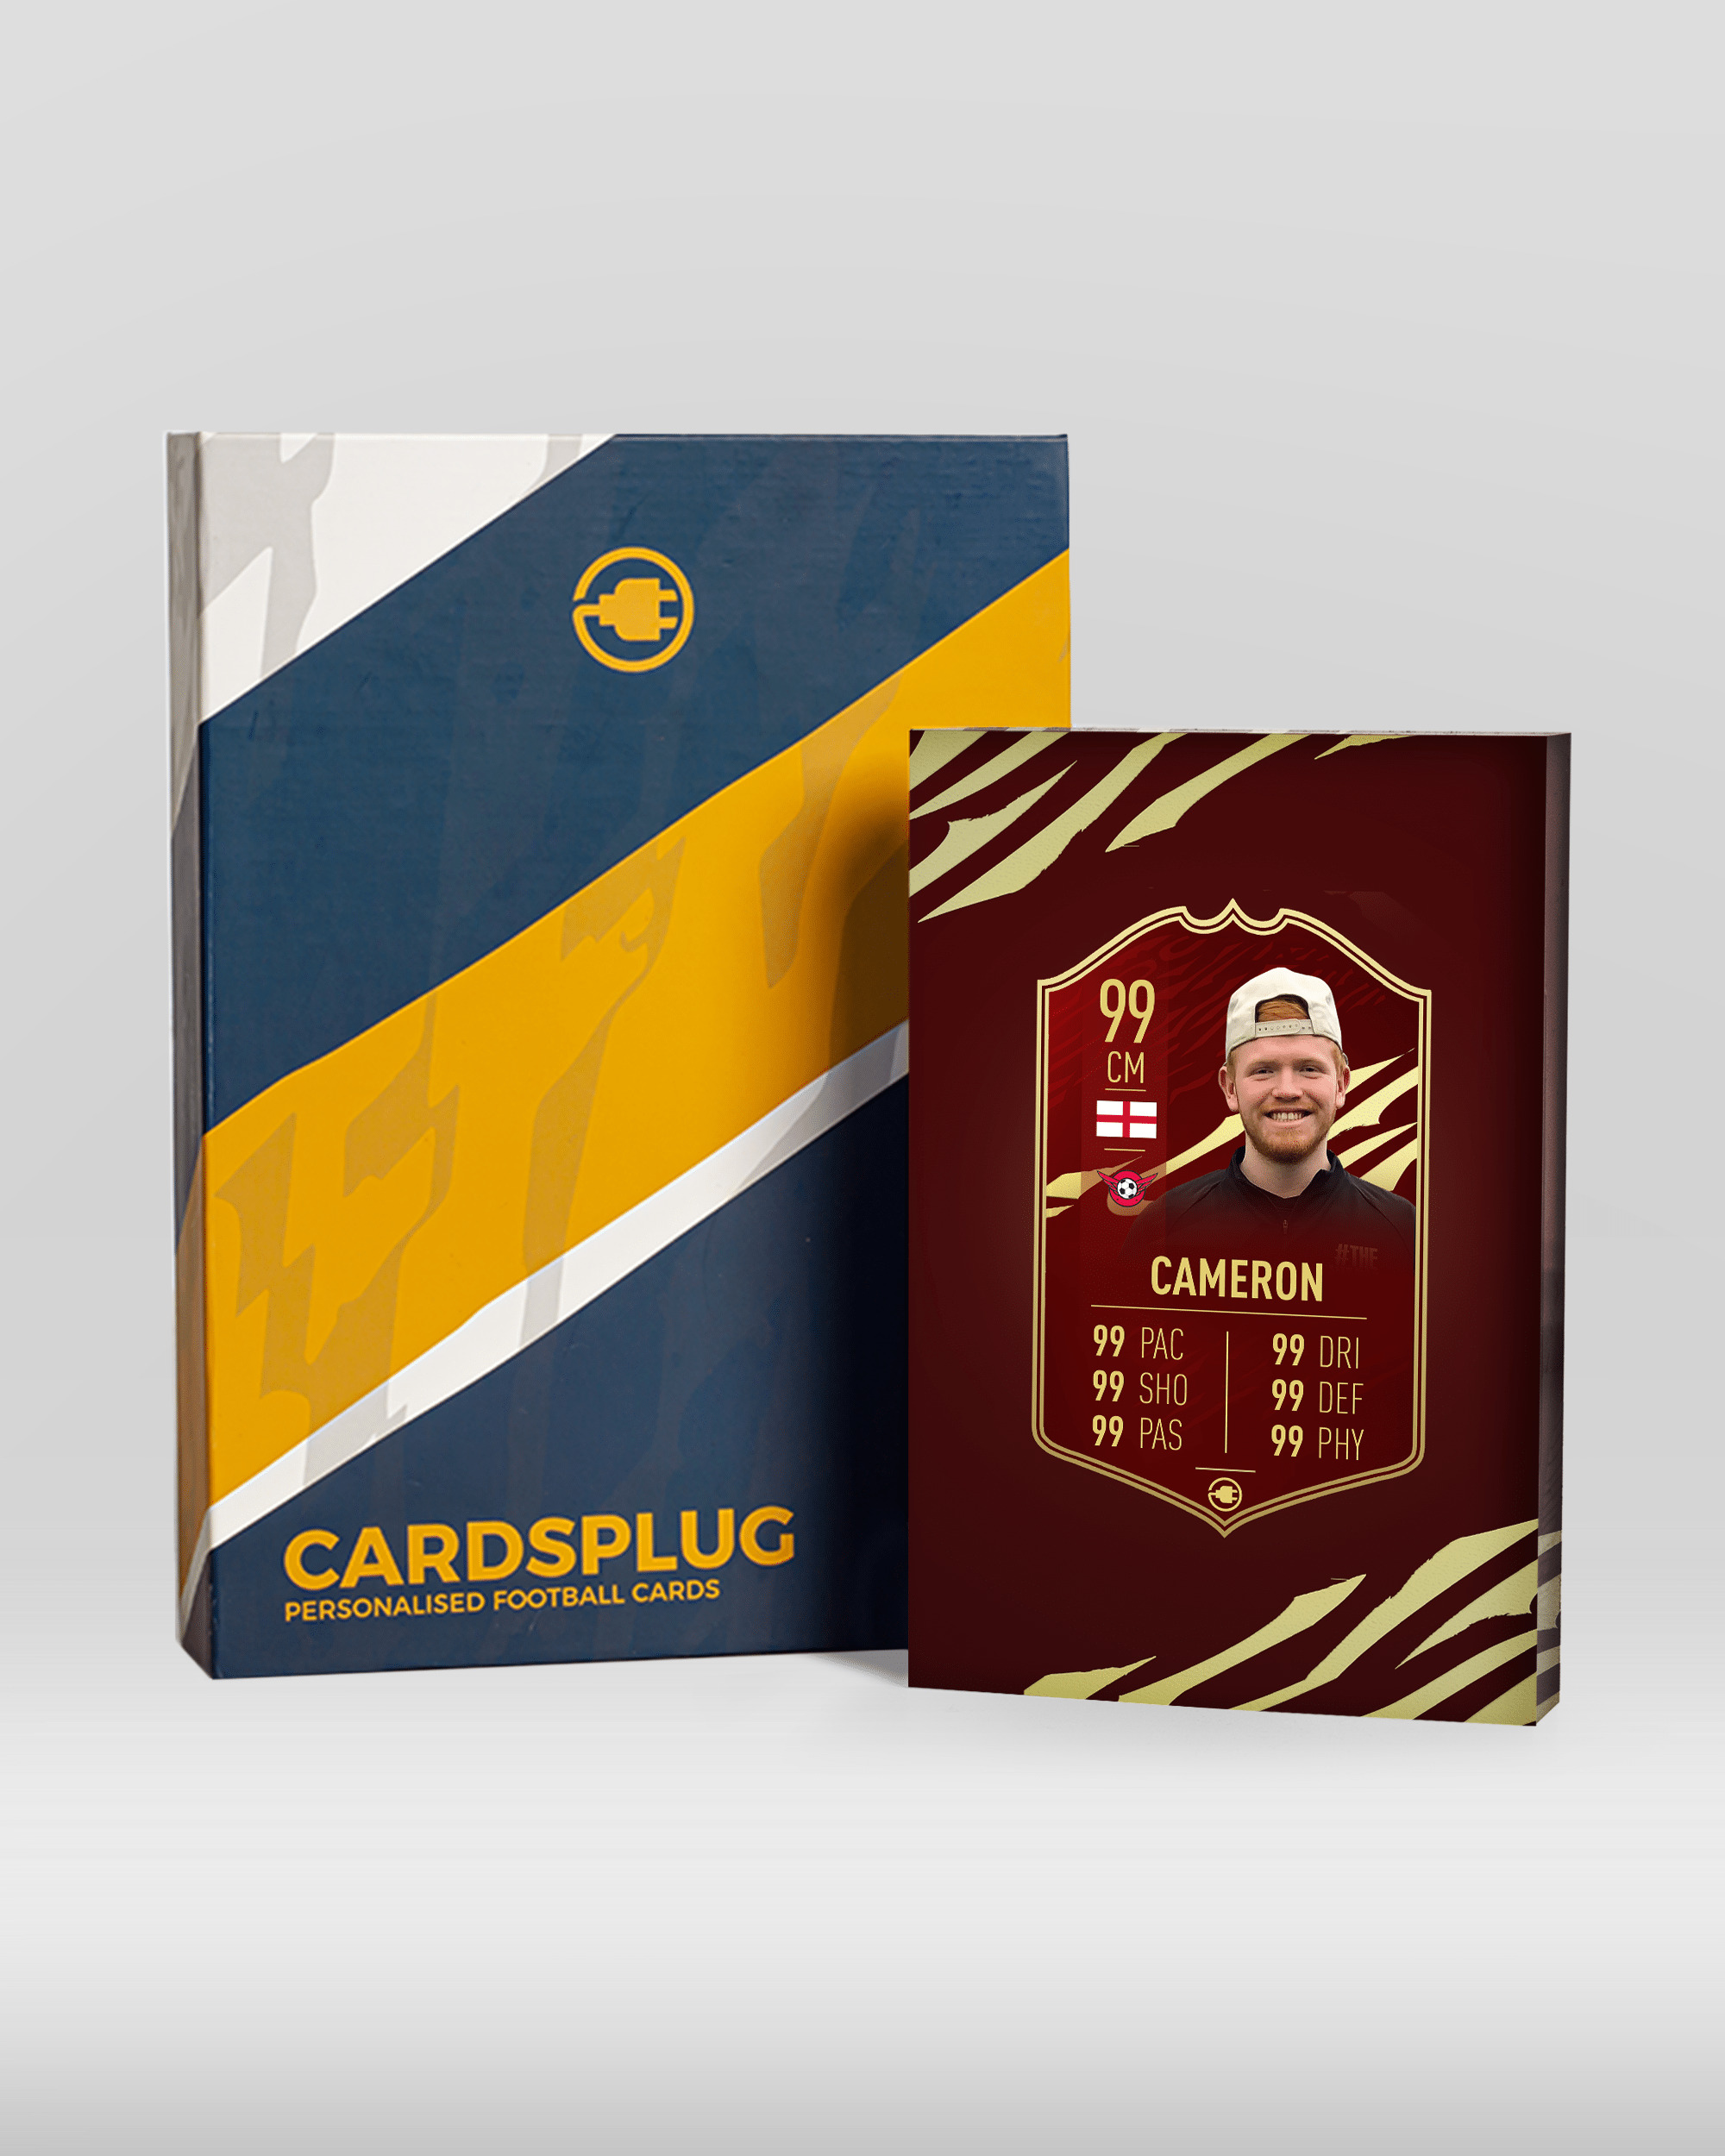 S21 Championship - CardsPlug | Real life football card